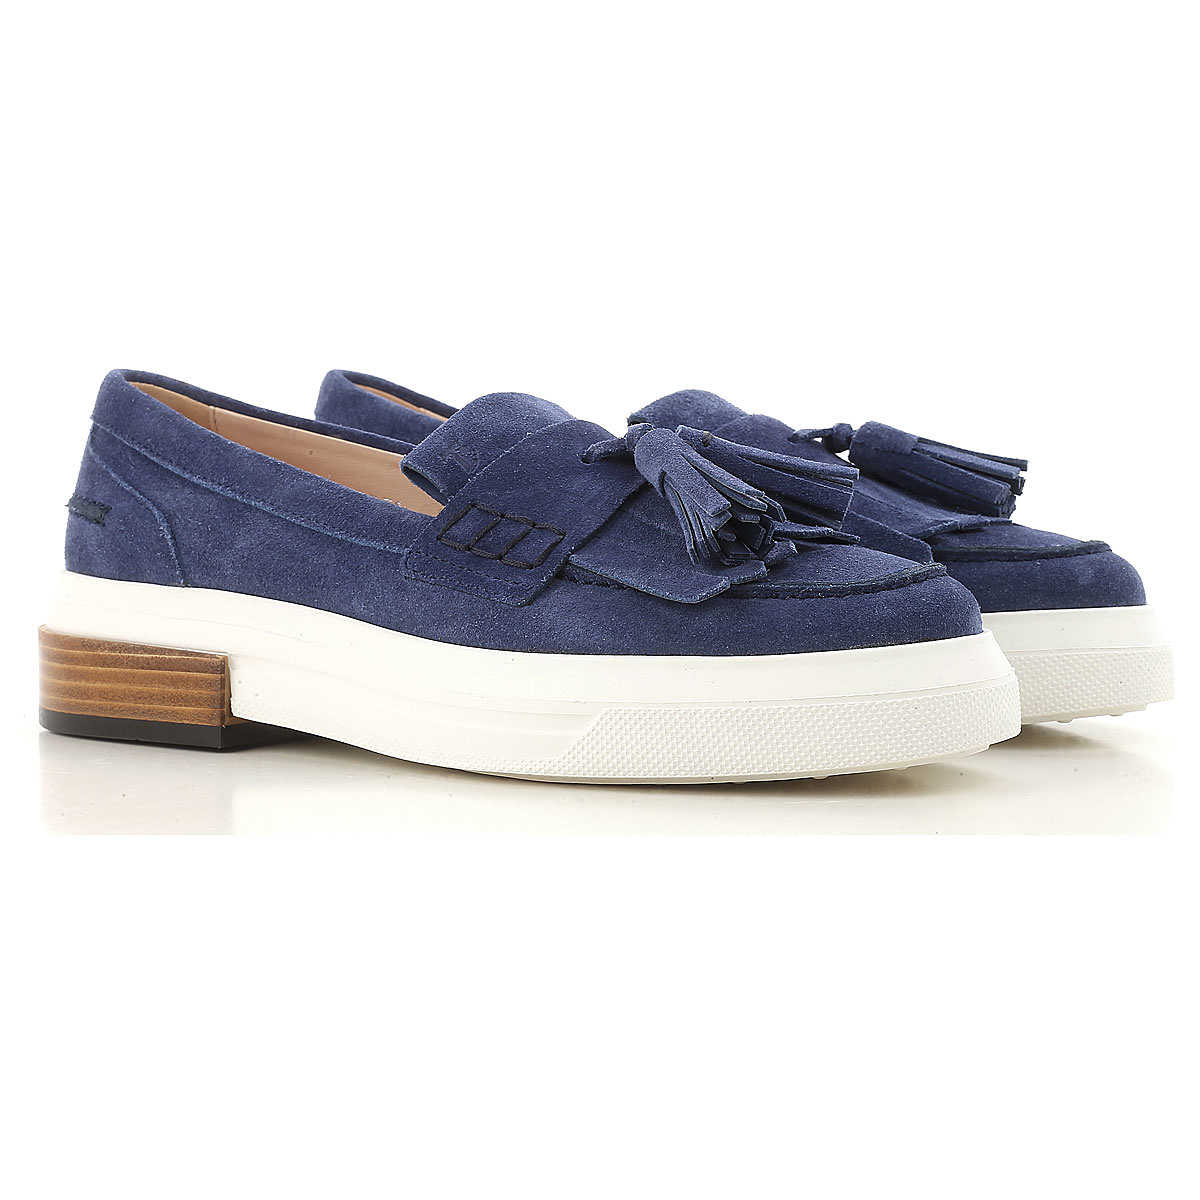 Tods Loafers for Women On Sale Cobalt UK - GOOFASH